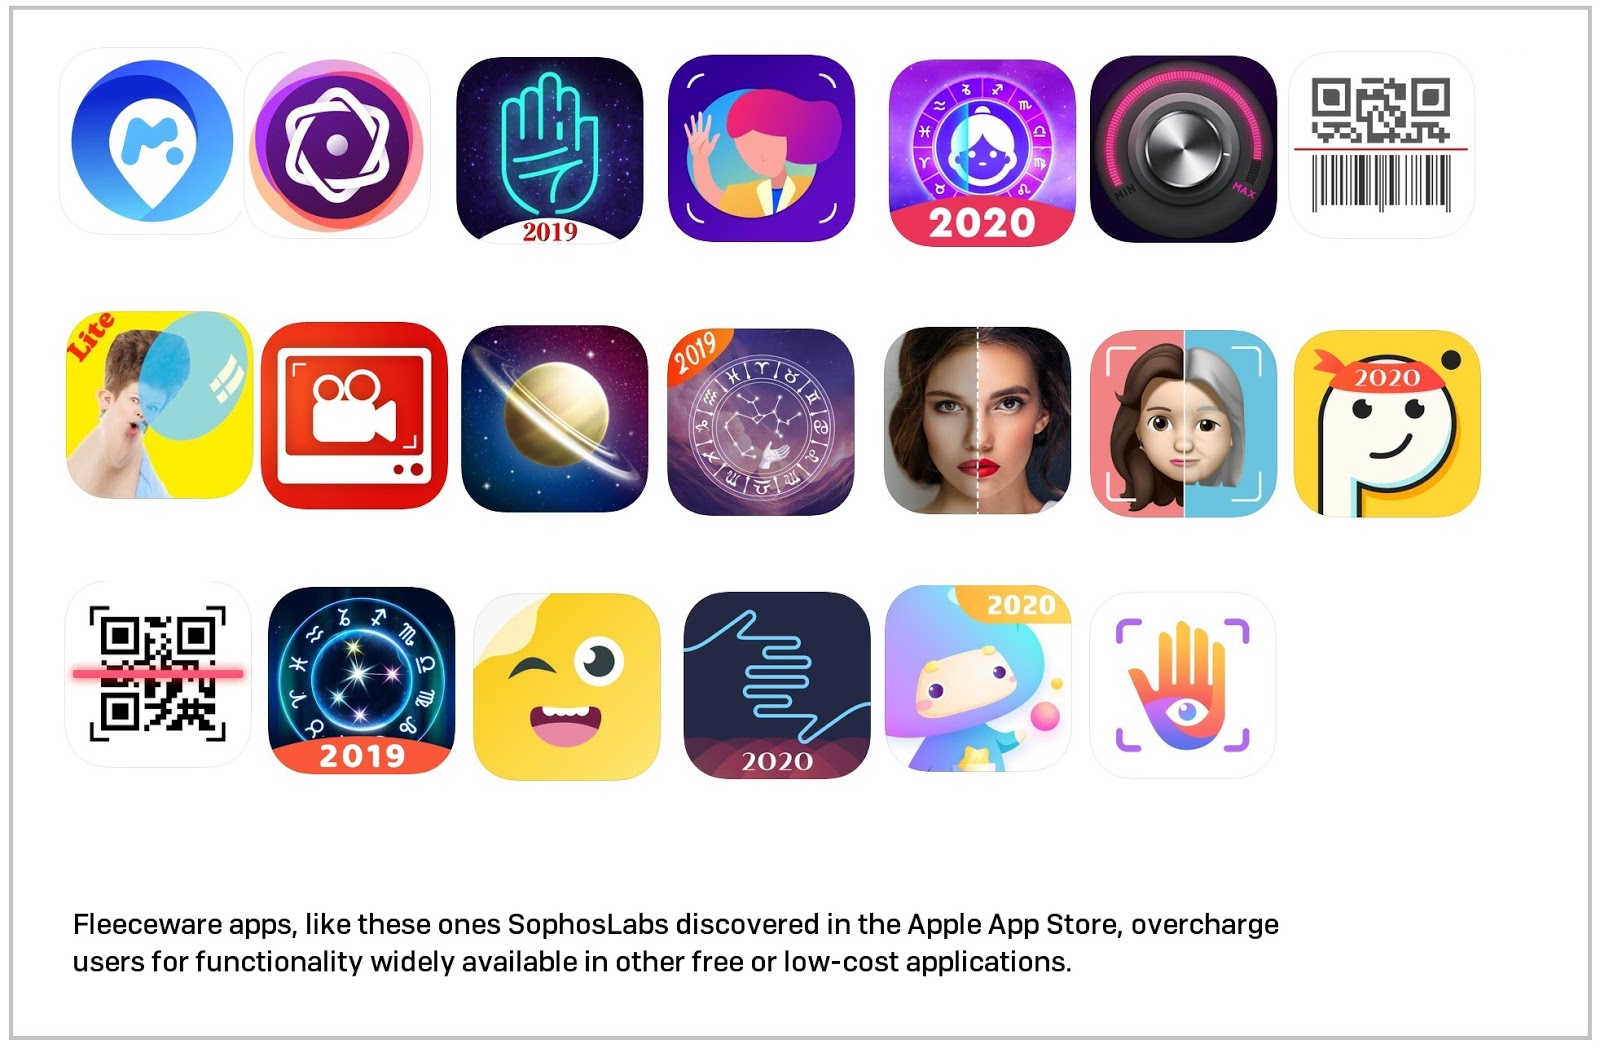 Scam Apps Found In The Apple S App Store Resulted In Many Users Facing Financial Frauds Digital Information World